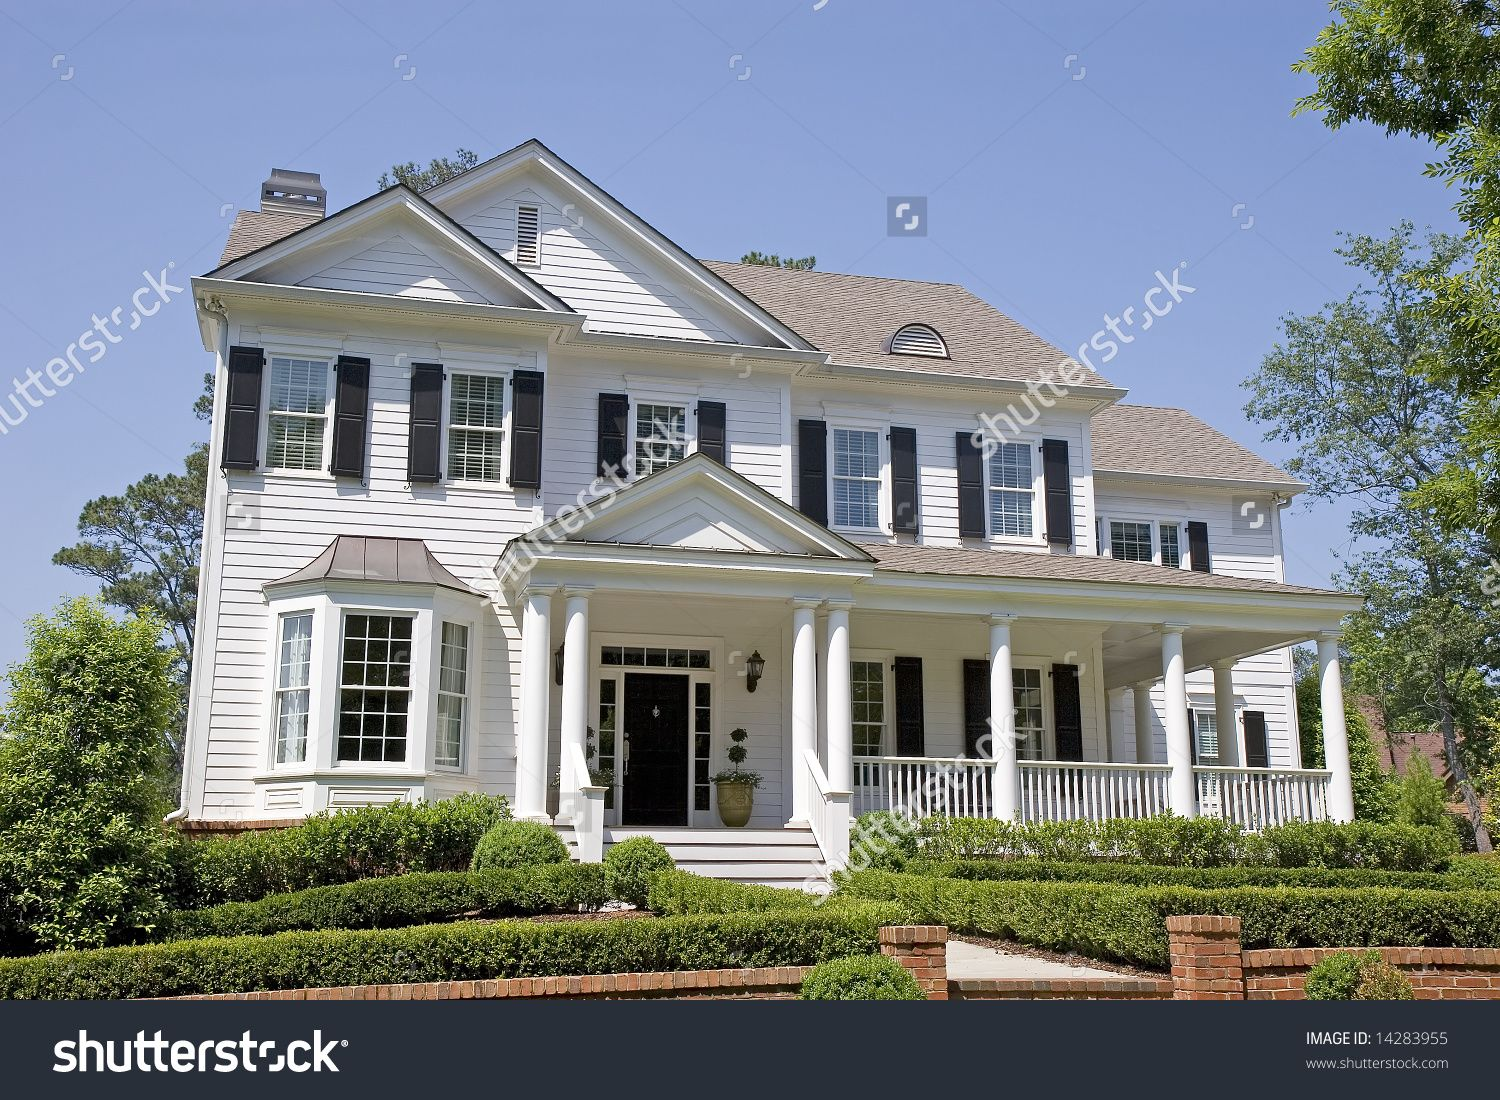 traditional two-story house fronts - Google Search